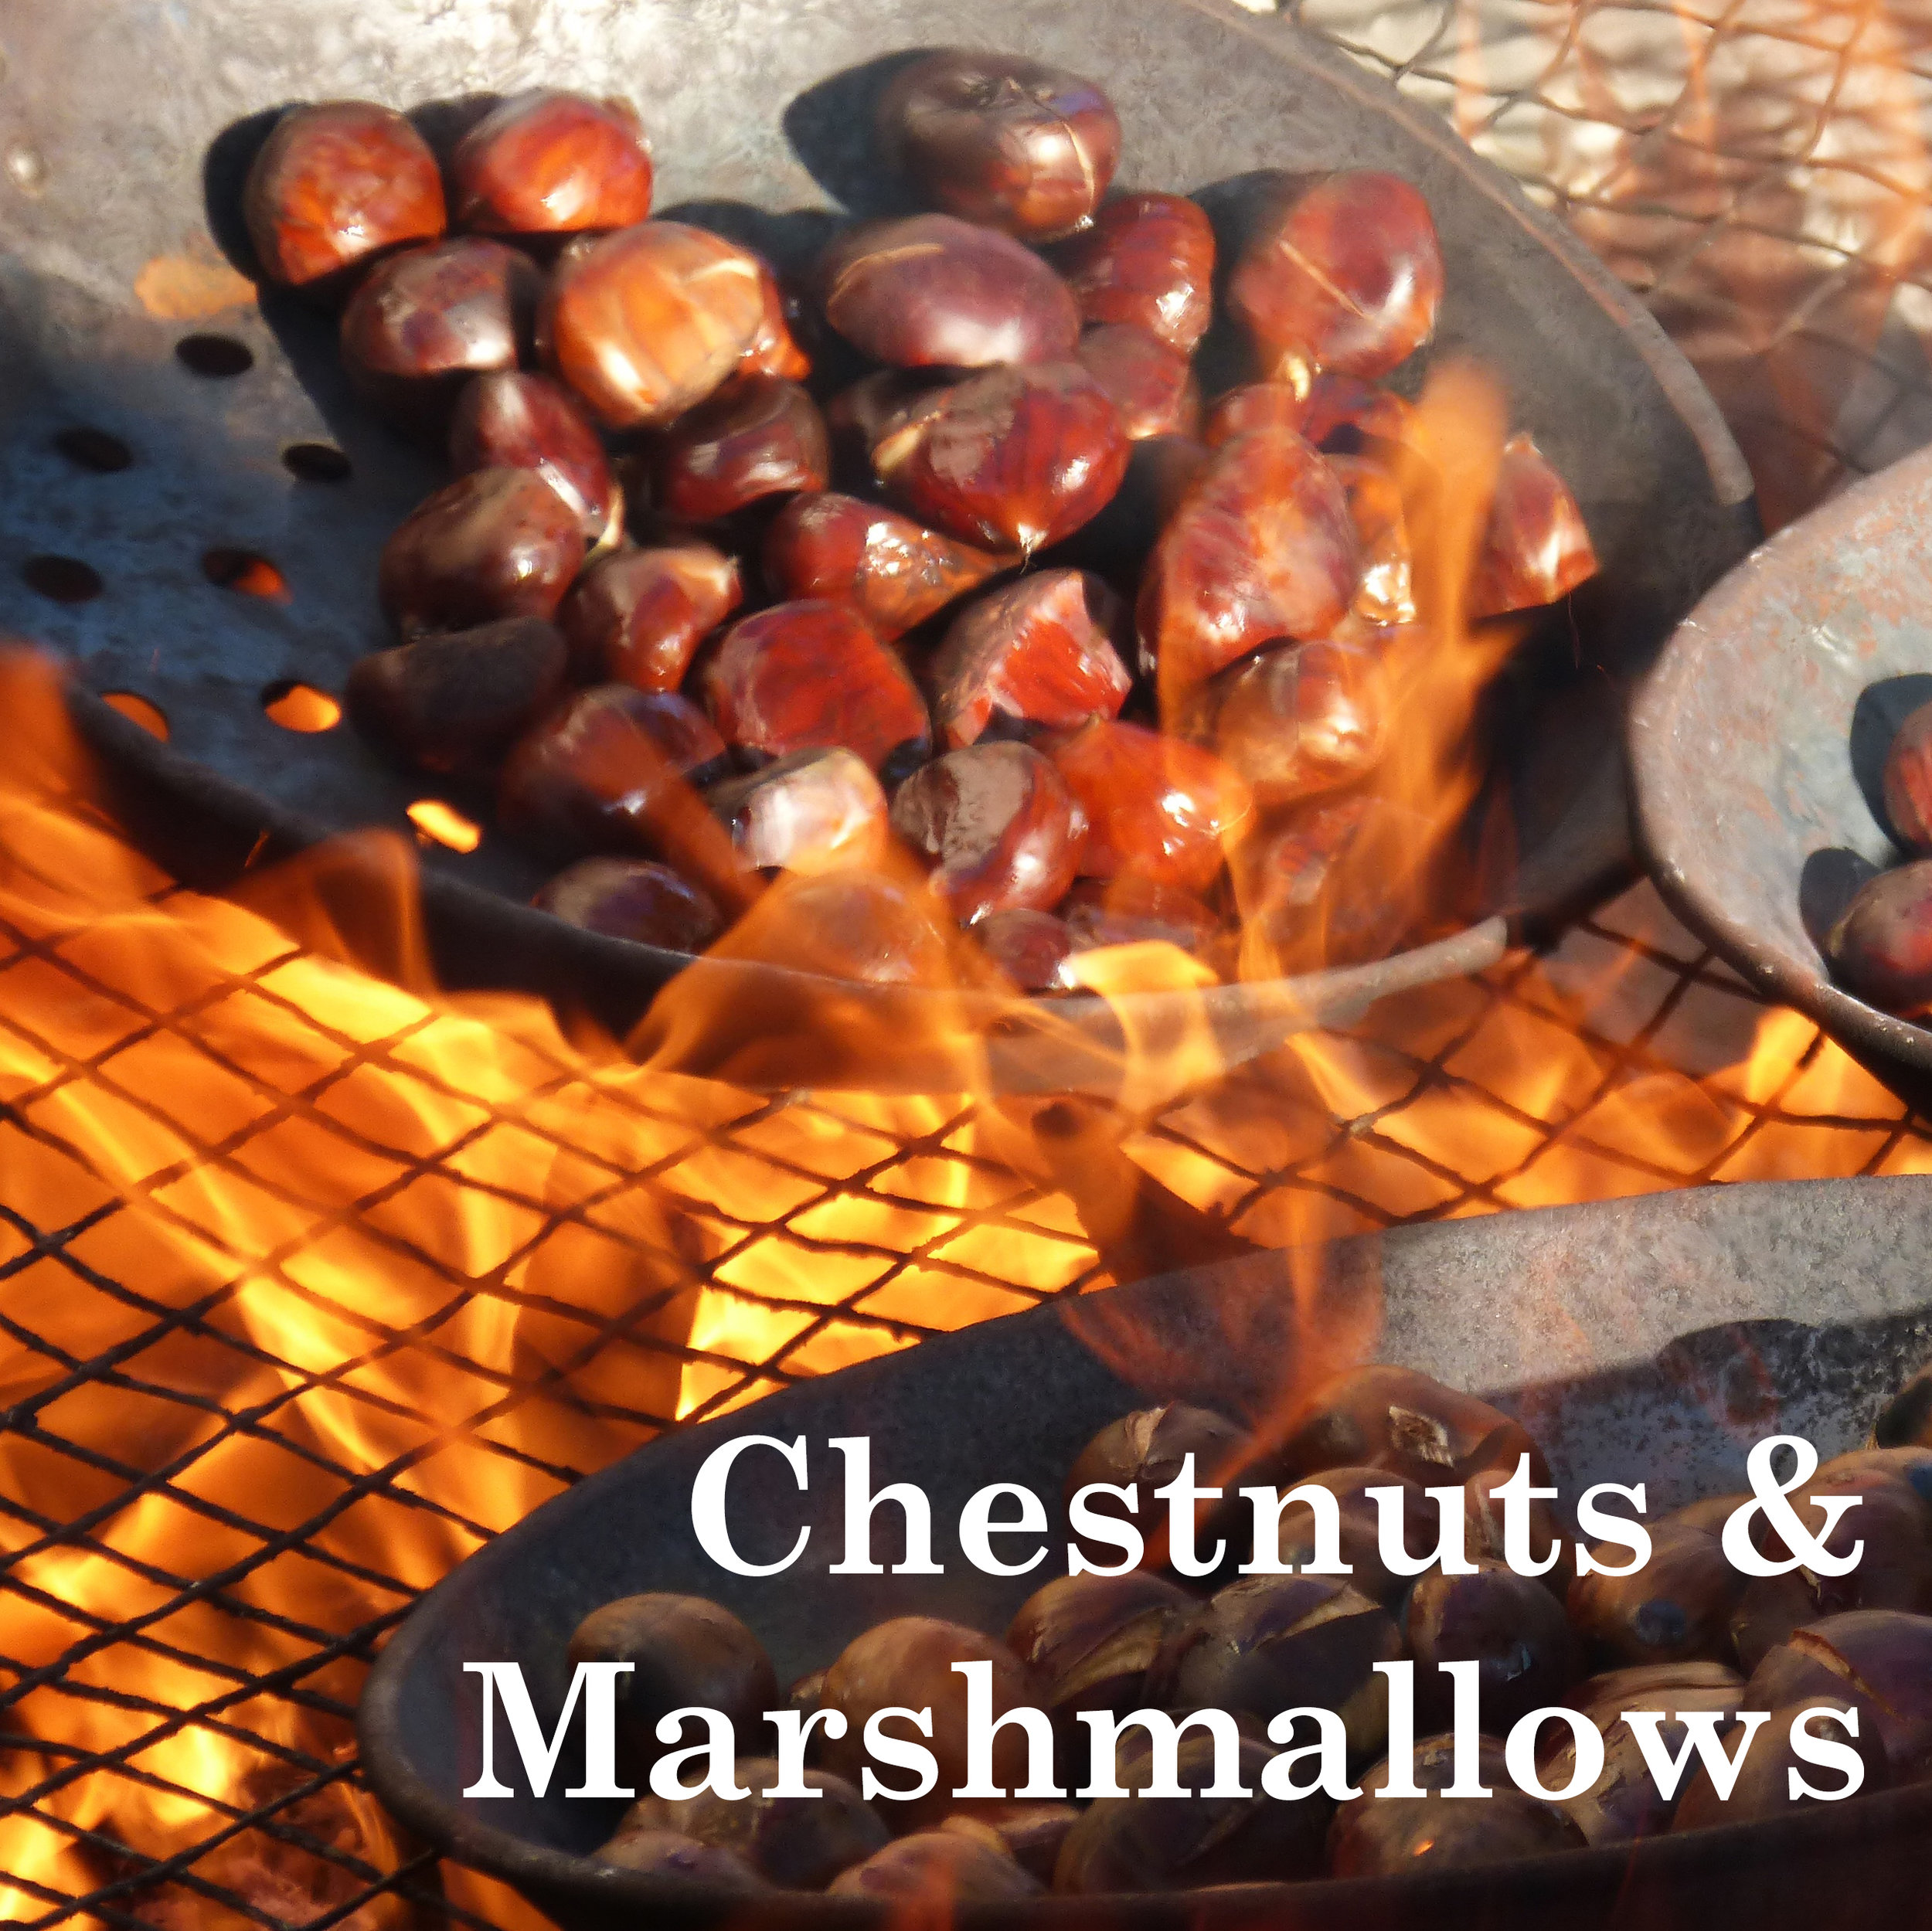 Chestnut & Marshmallows.jpg